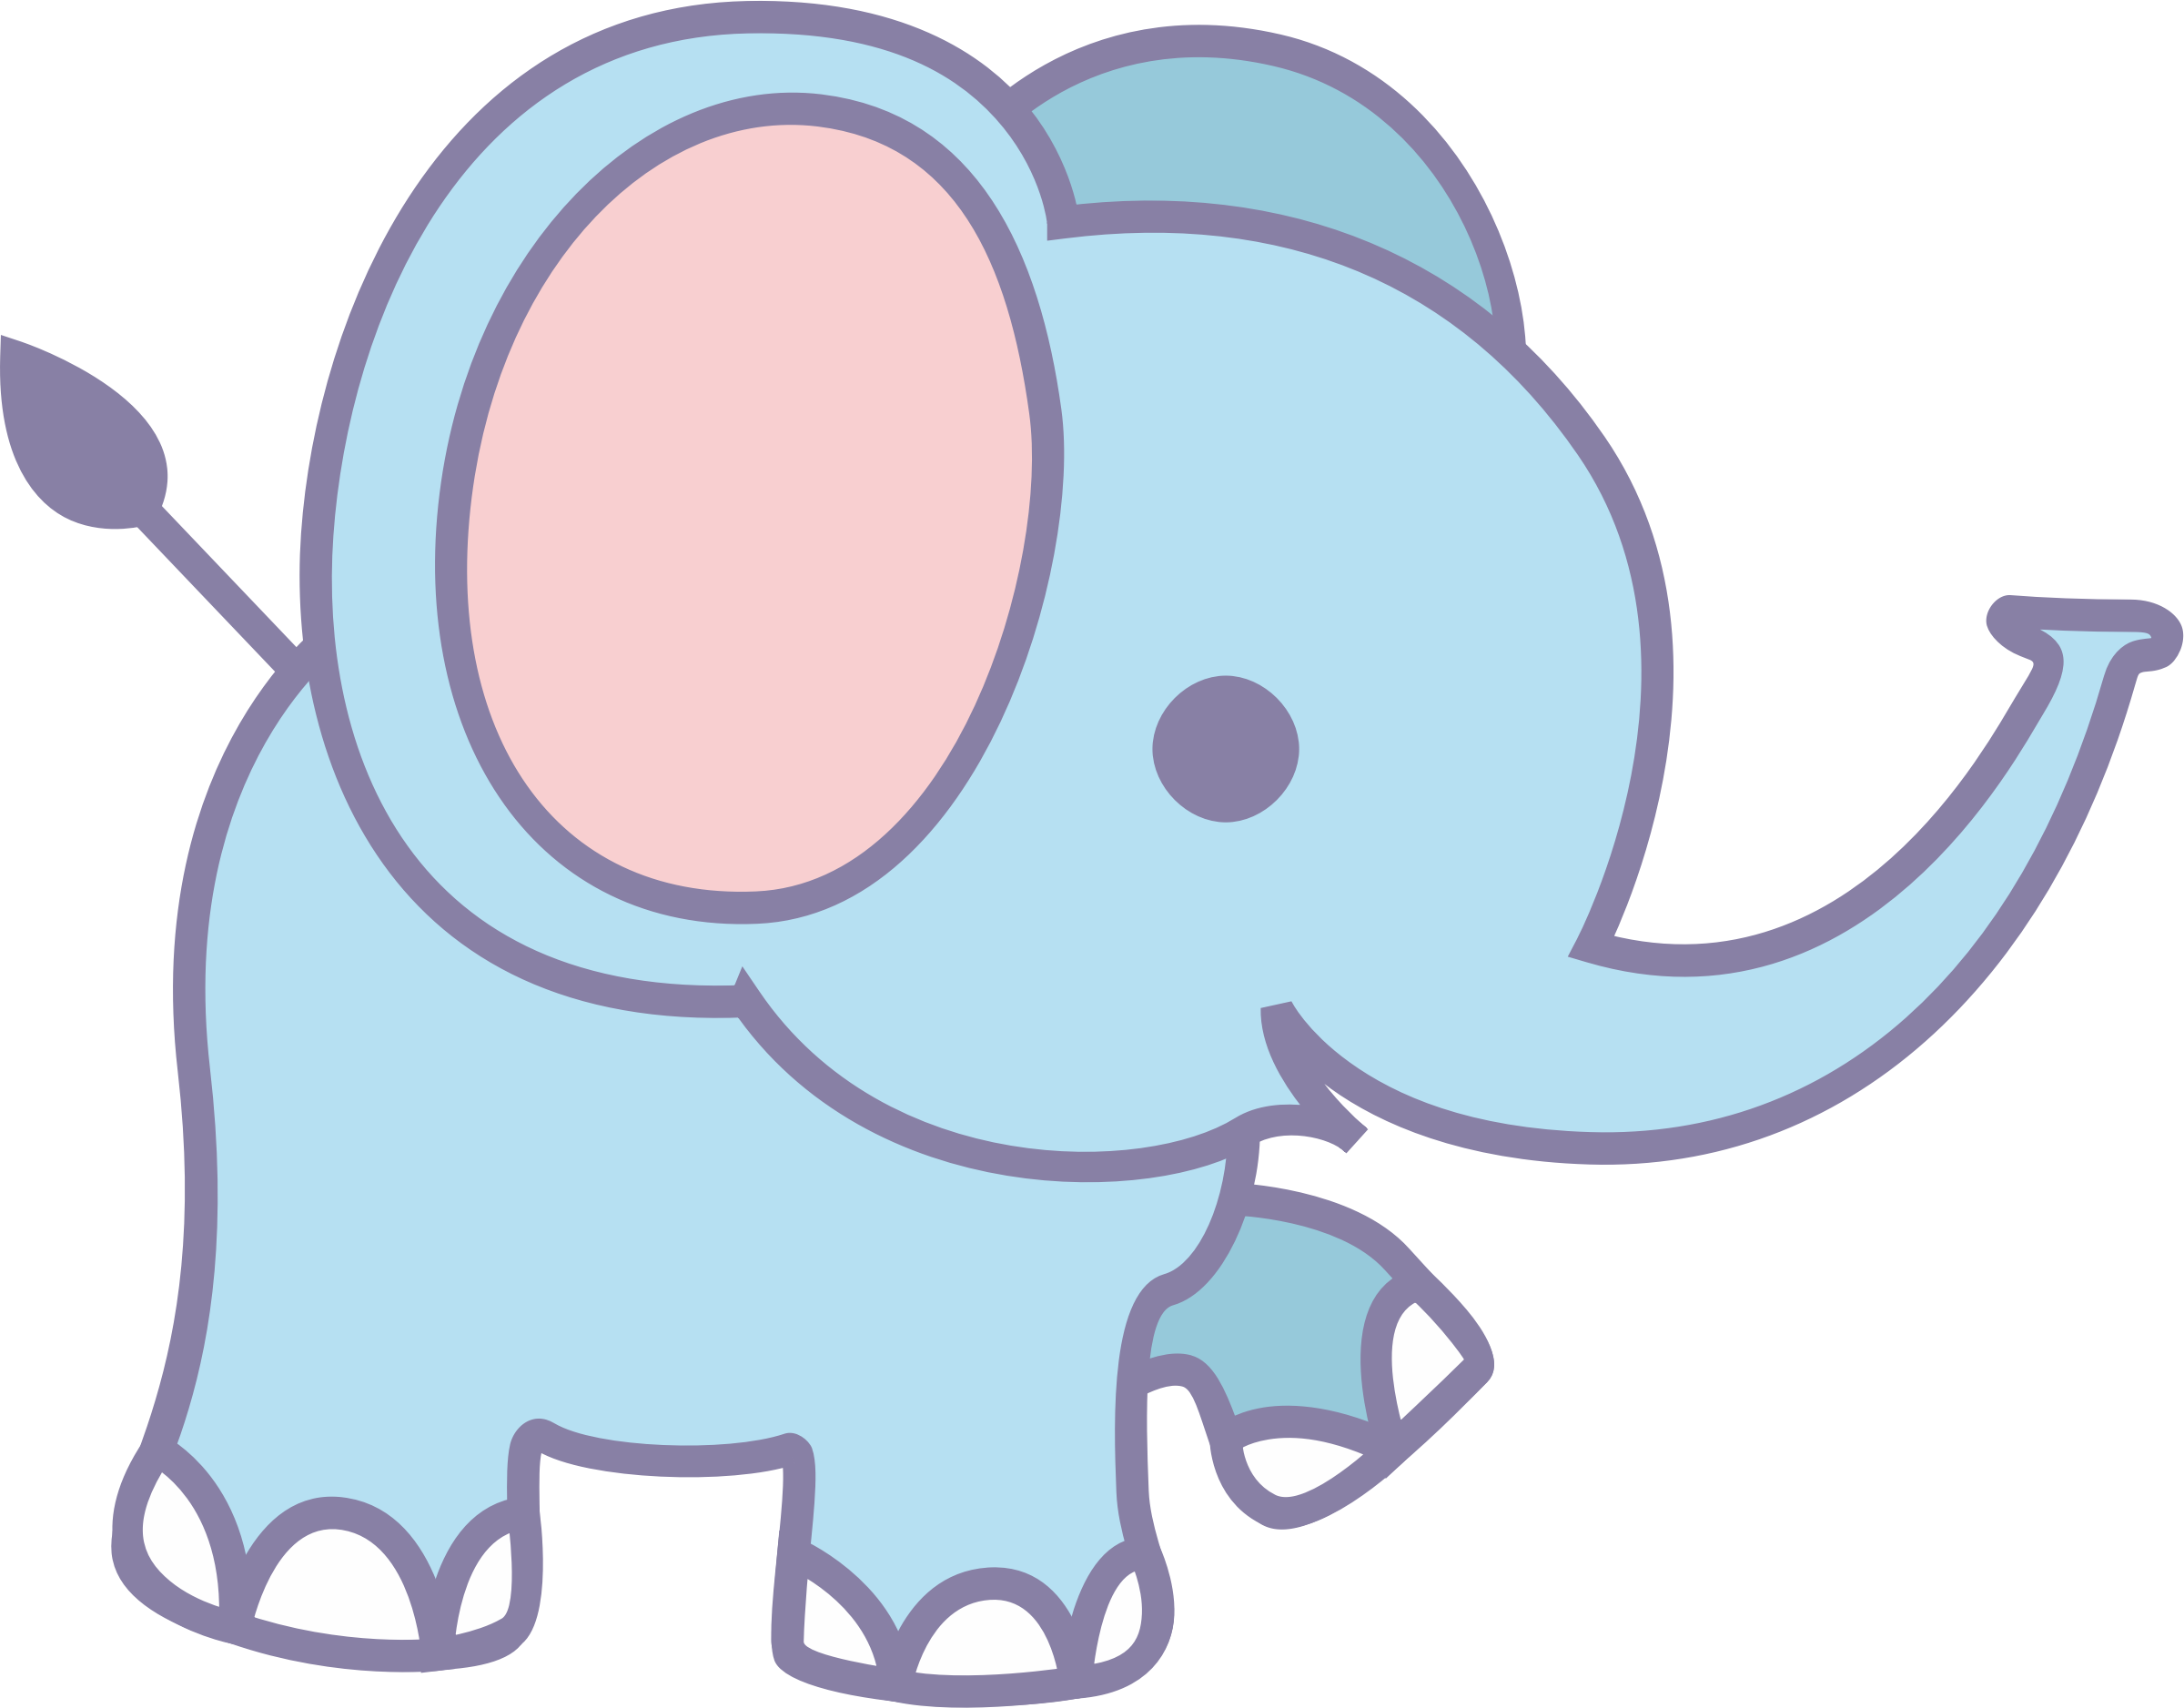 Elephant cartoon png. Cute icons free and